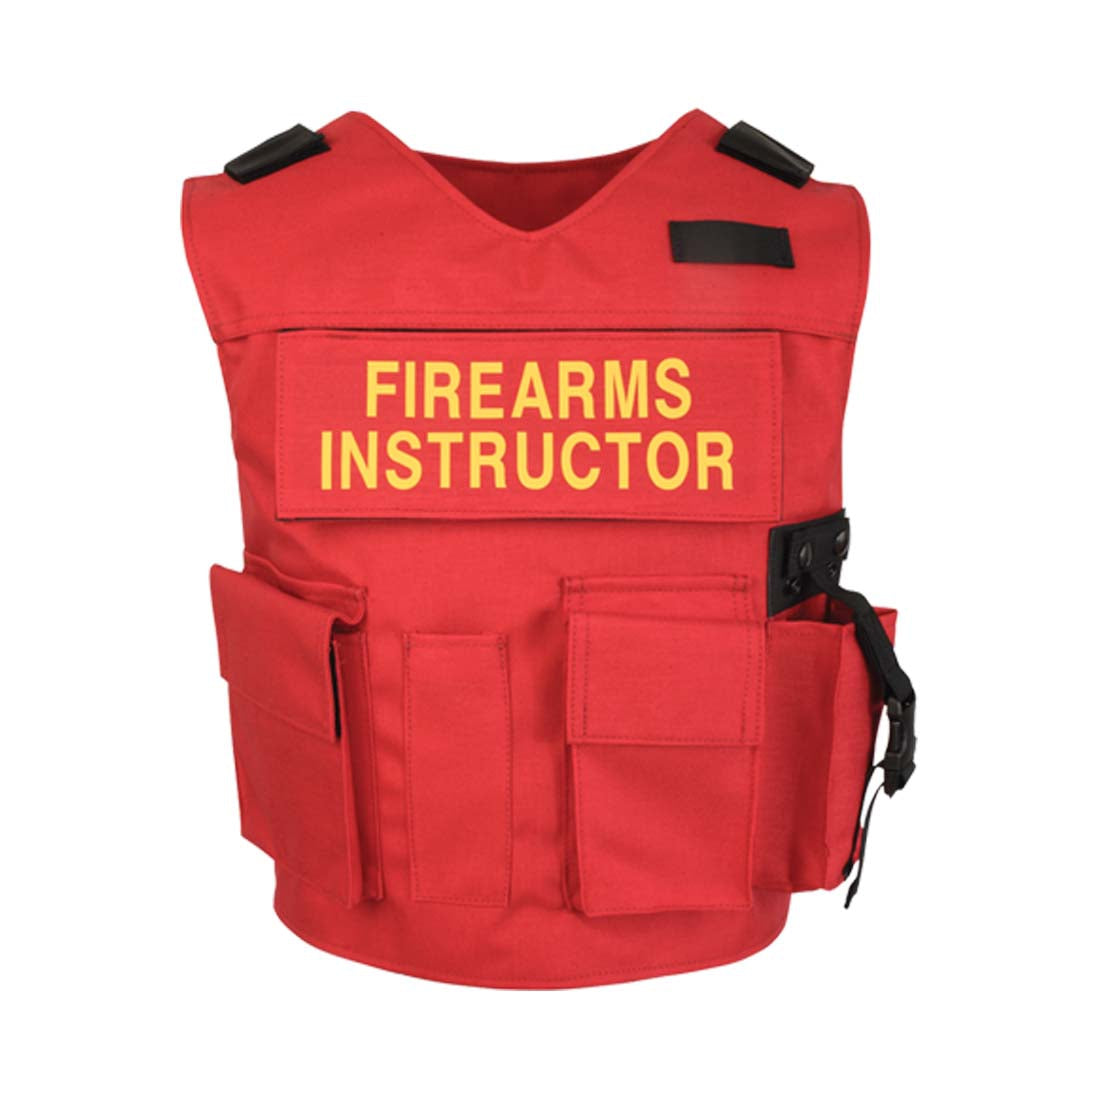 GH Armor Firearms Instructor Carrier [FIC]